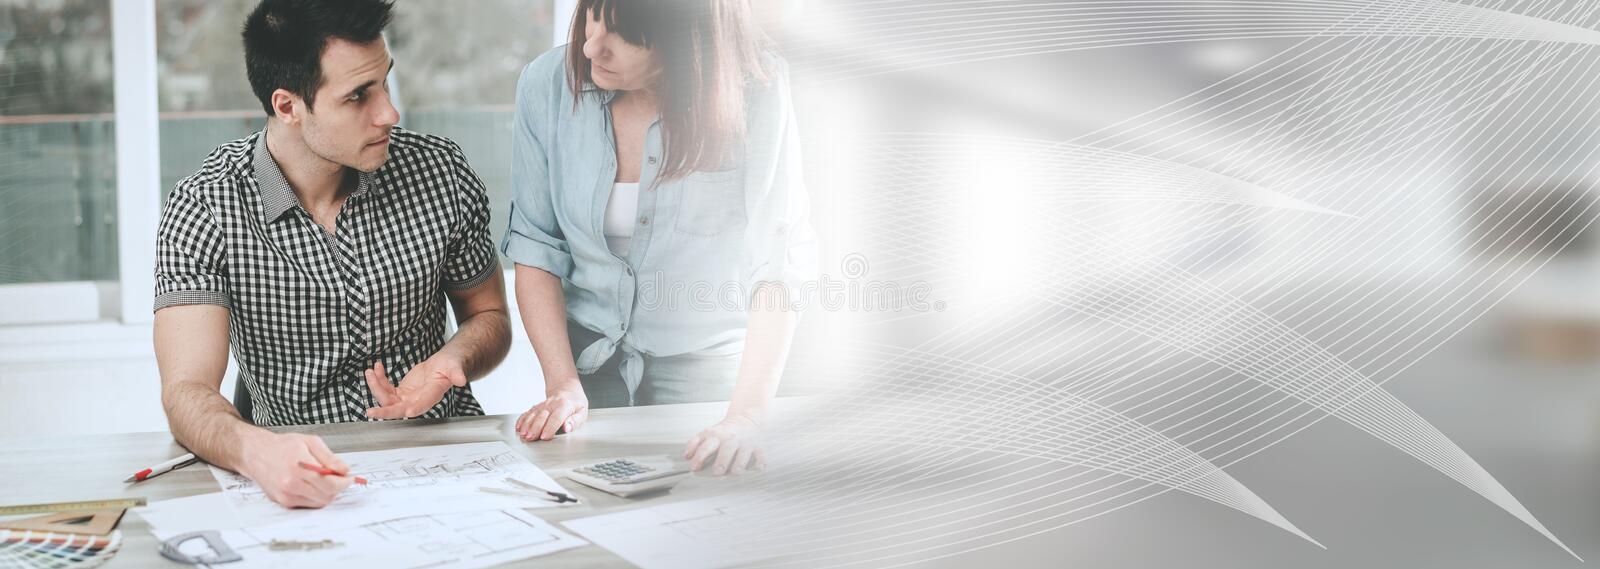 Architects working on plans; panoramic banner royalty free stock image